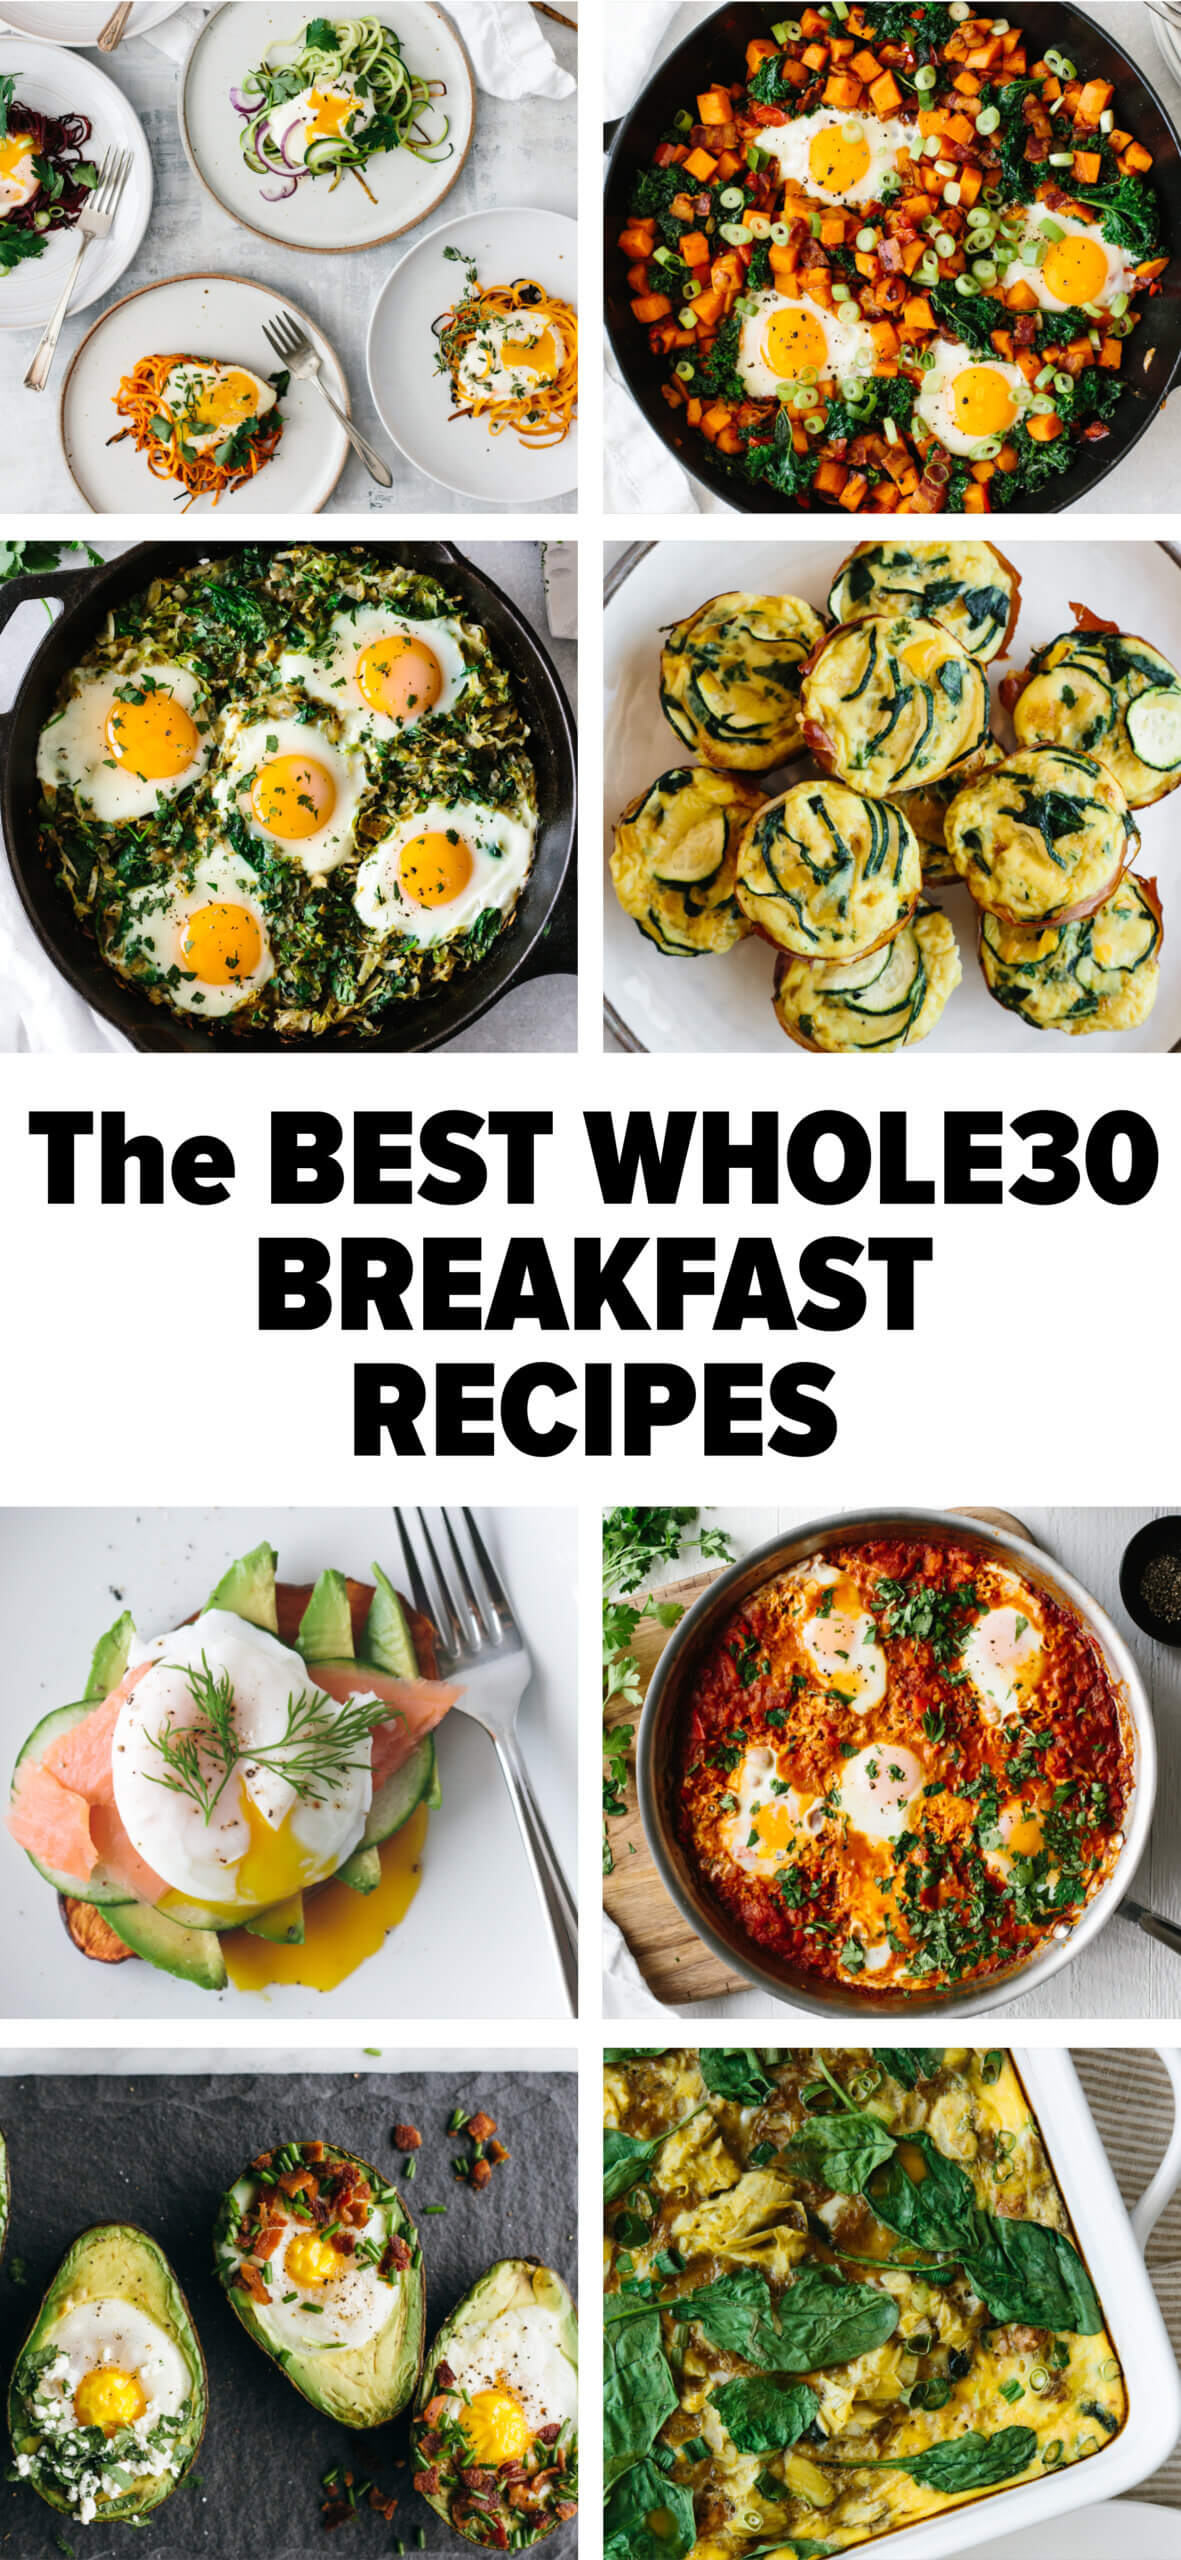 9+ Healthy Whole9 Breakfast Recipes  Downshiftology